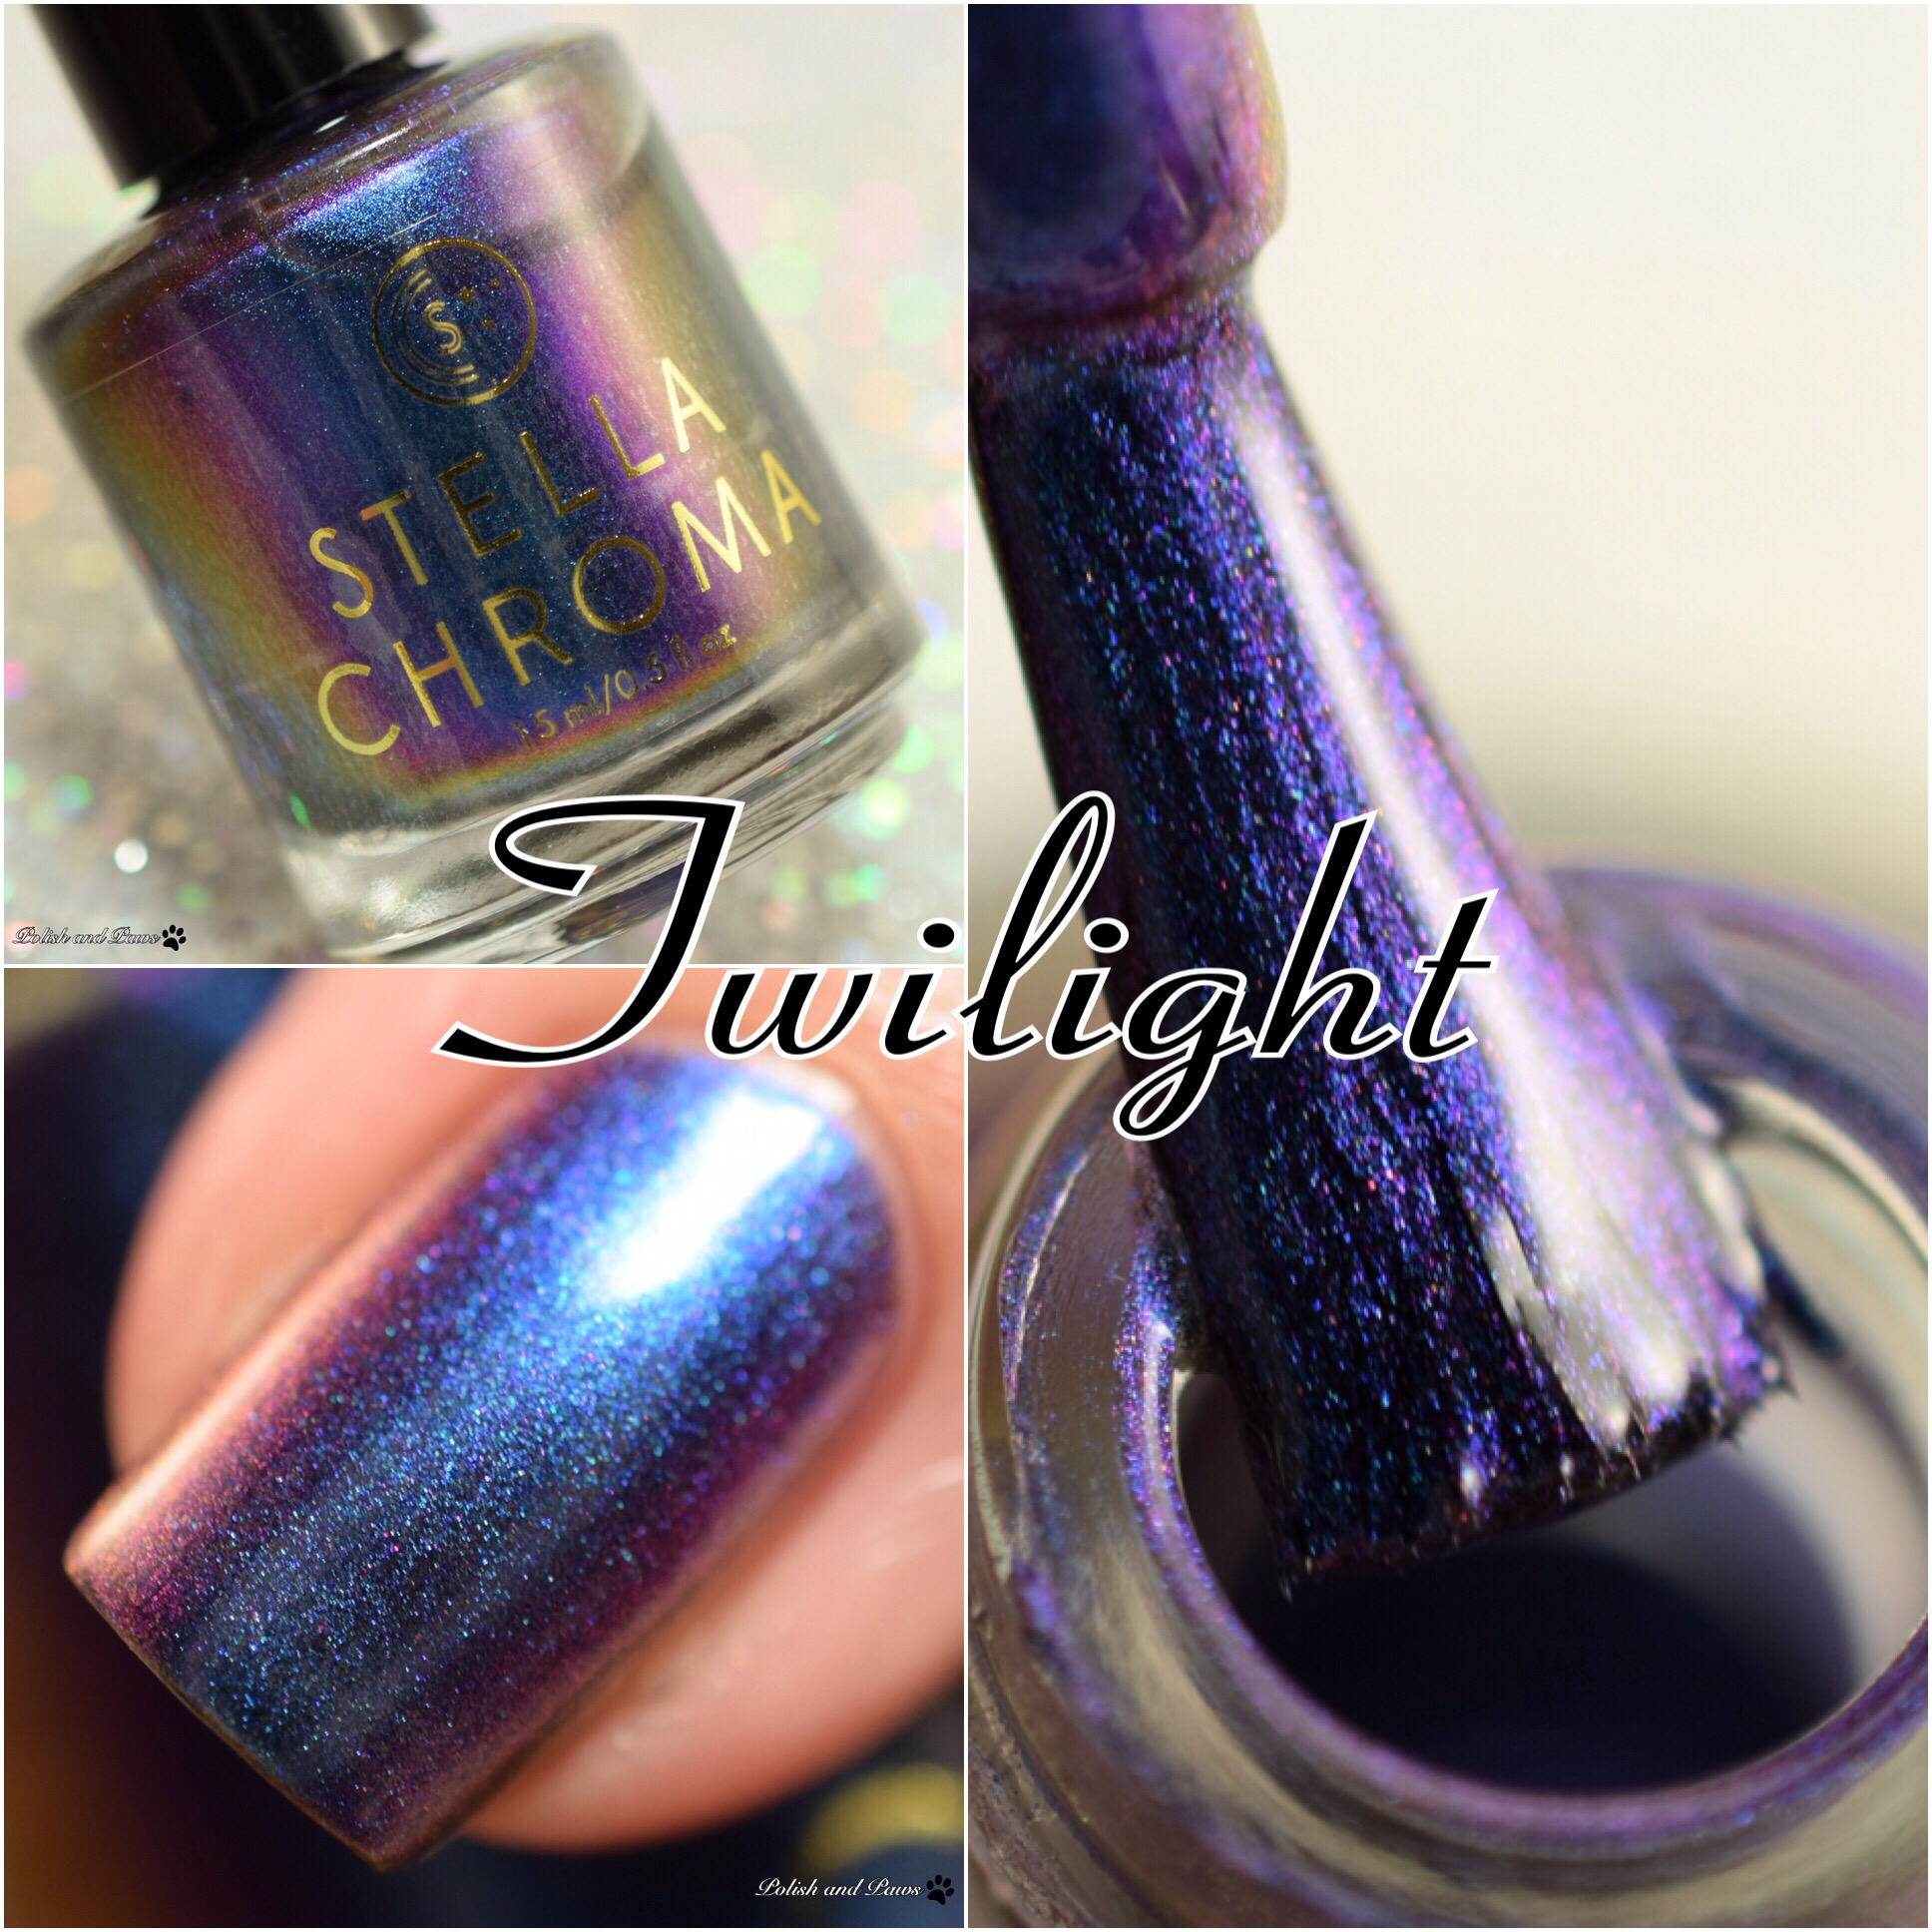 Stella Chroma Twilight